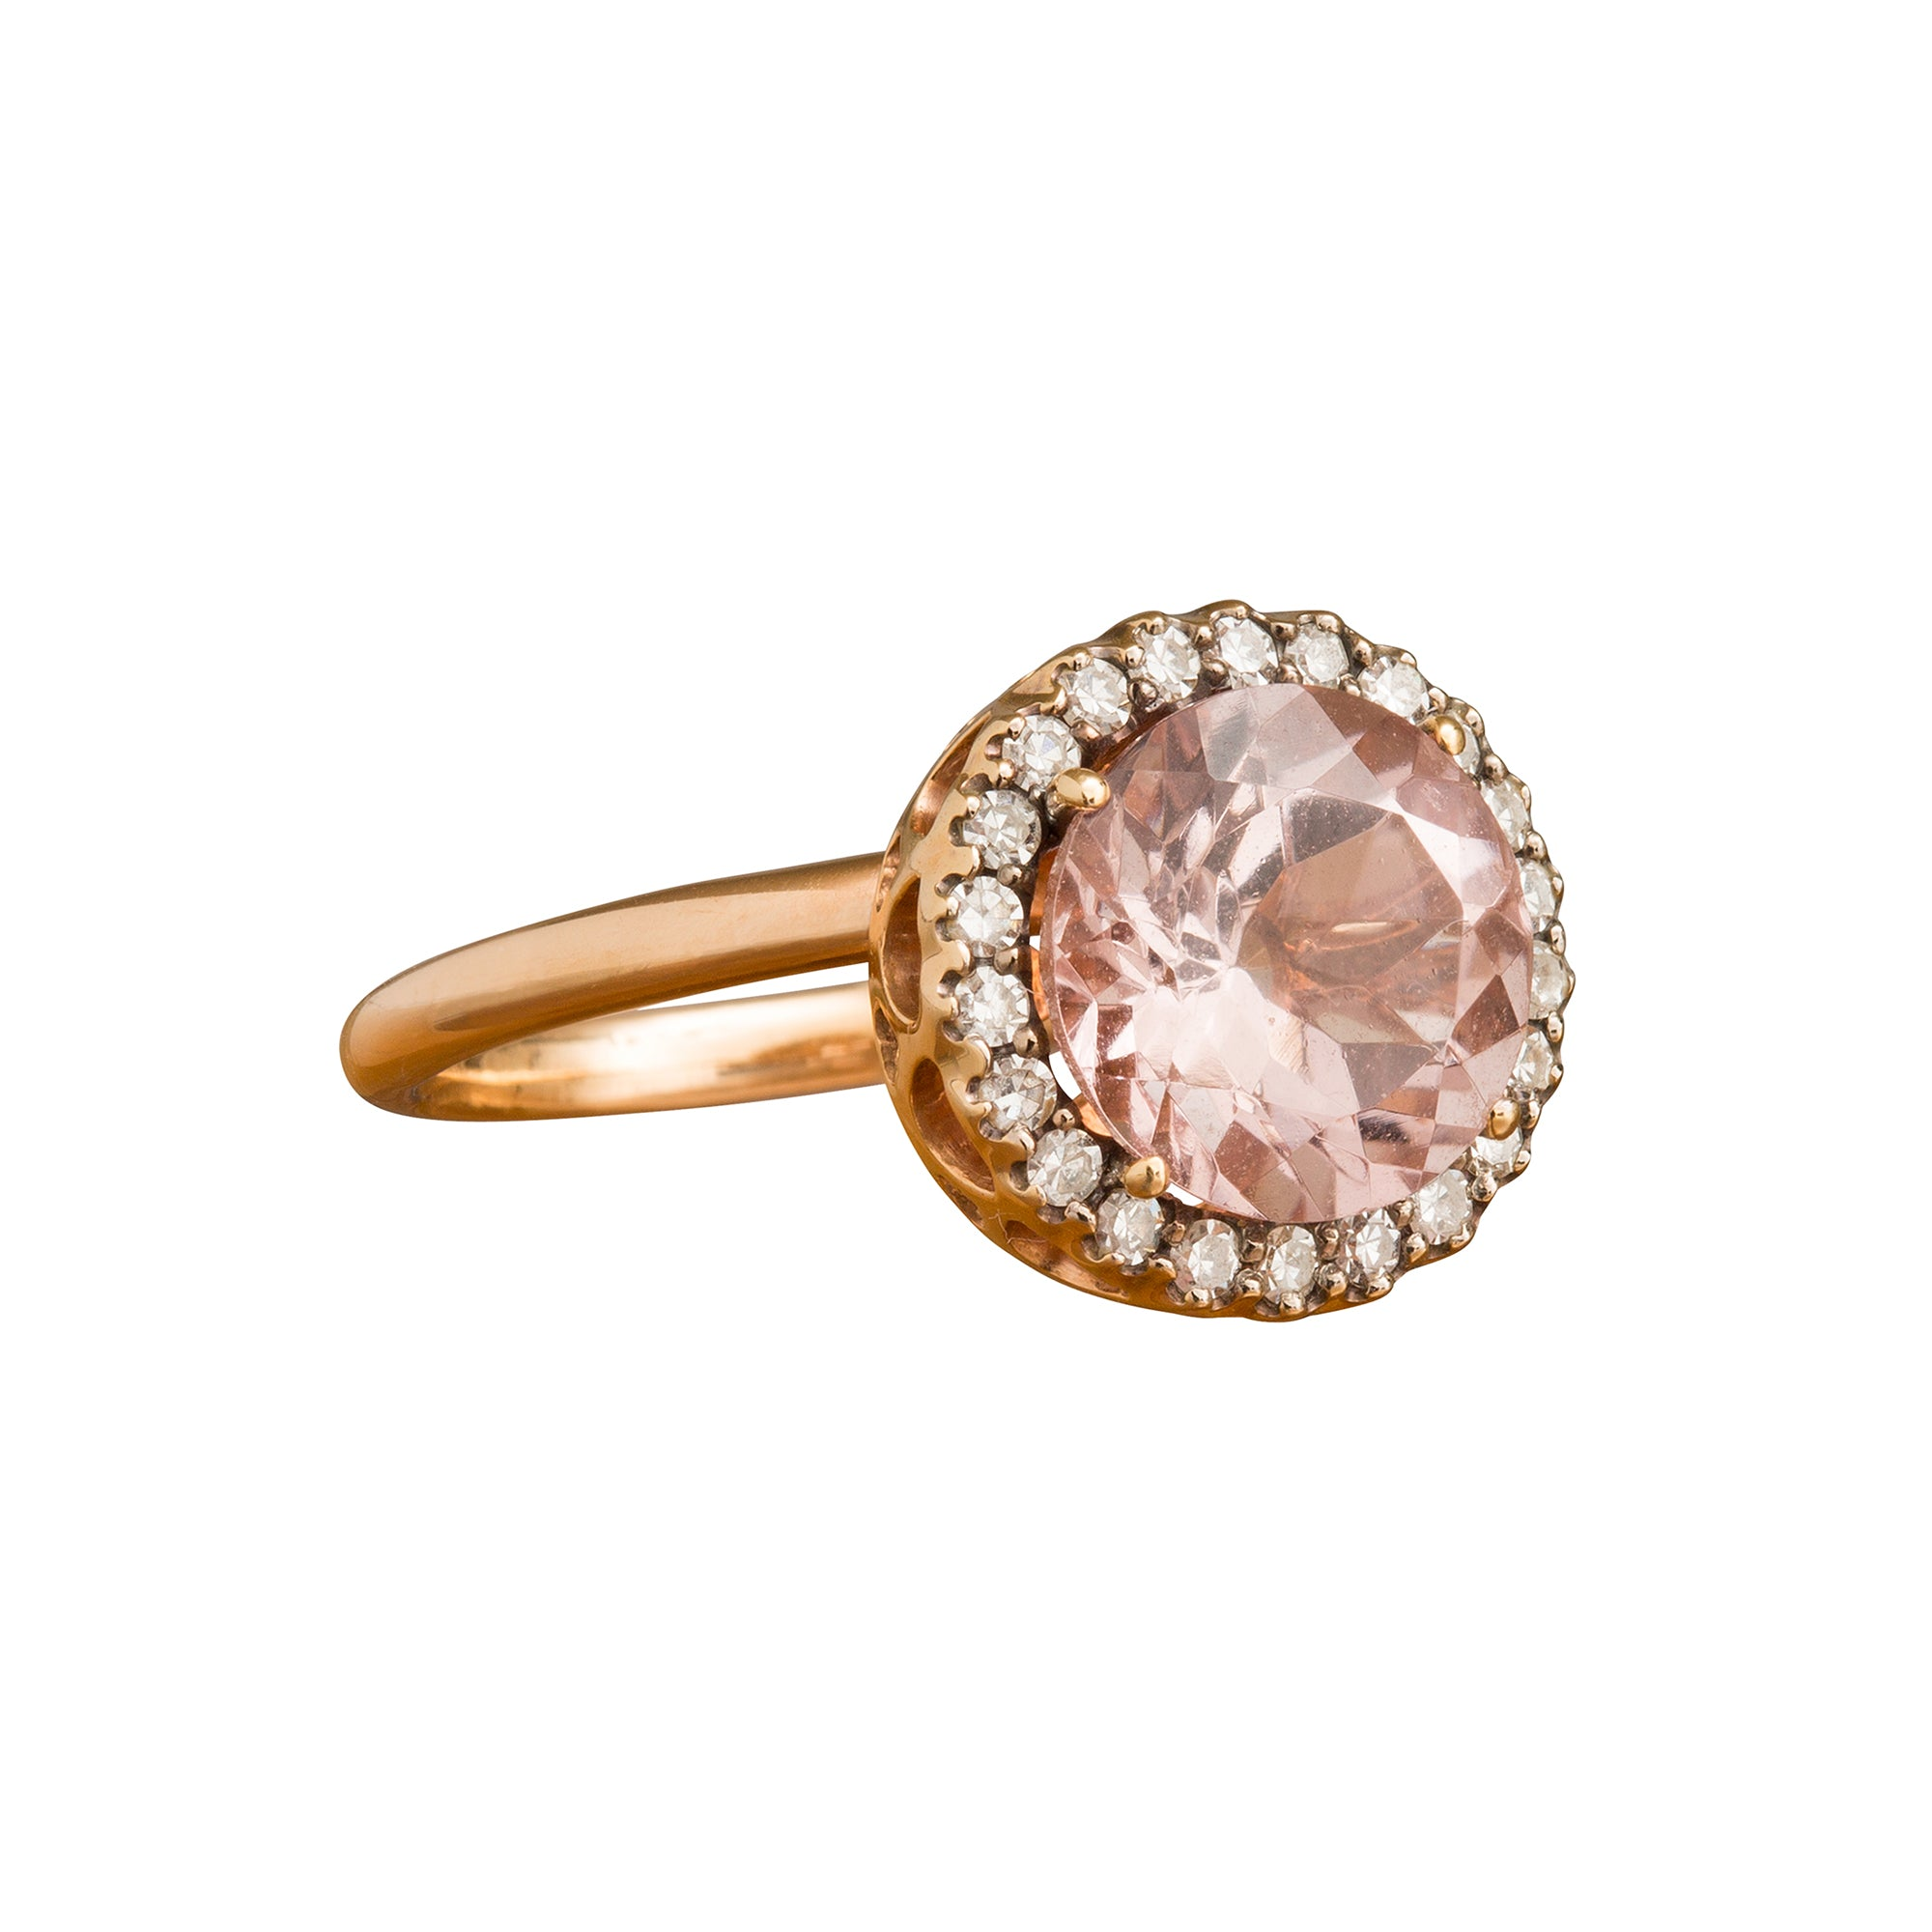 Beirut Morganite Ring by Selim Mouzannar for Broken English Jewelry